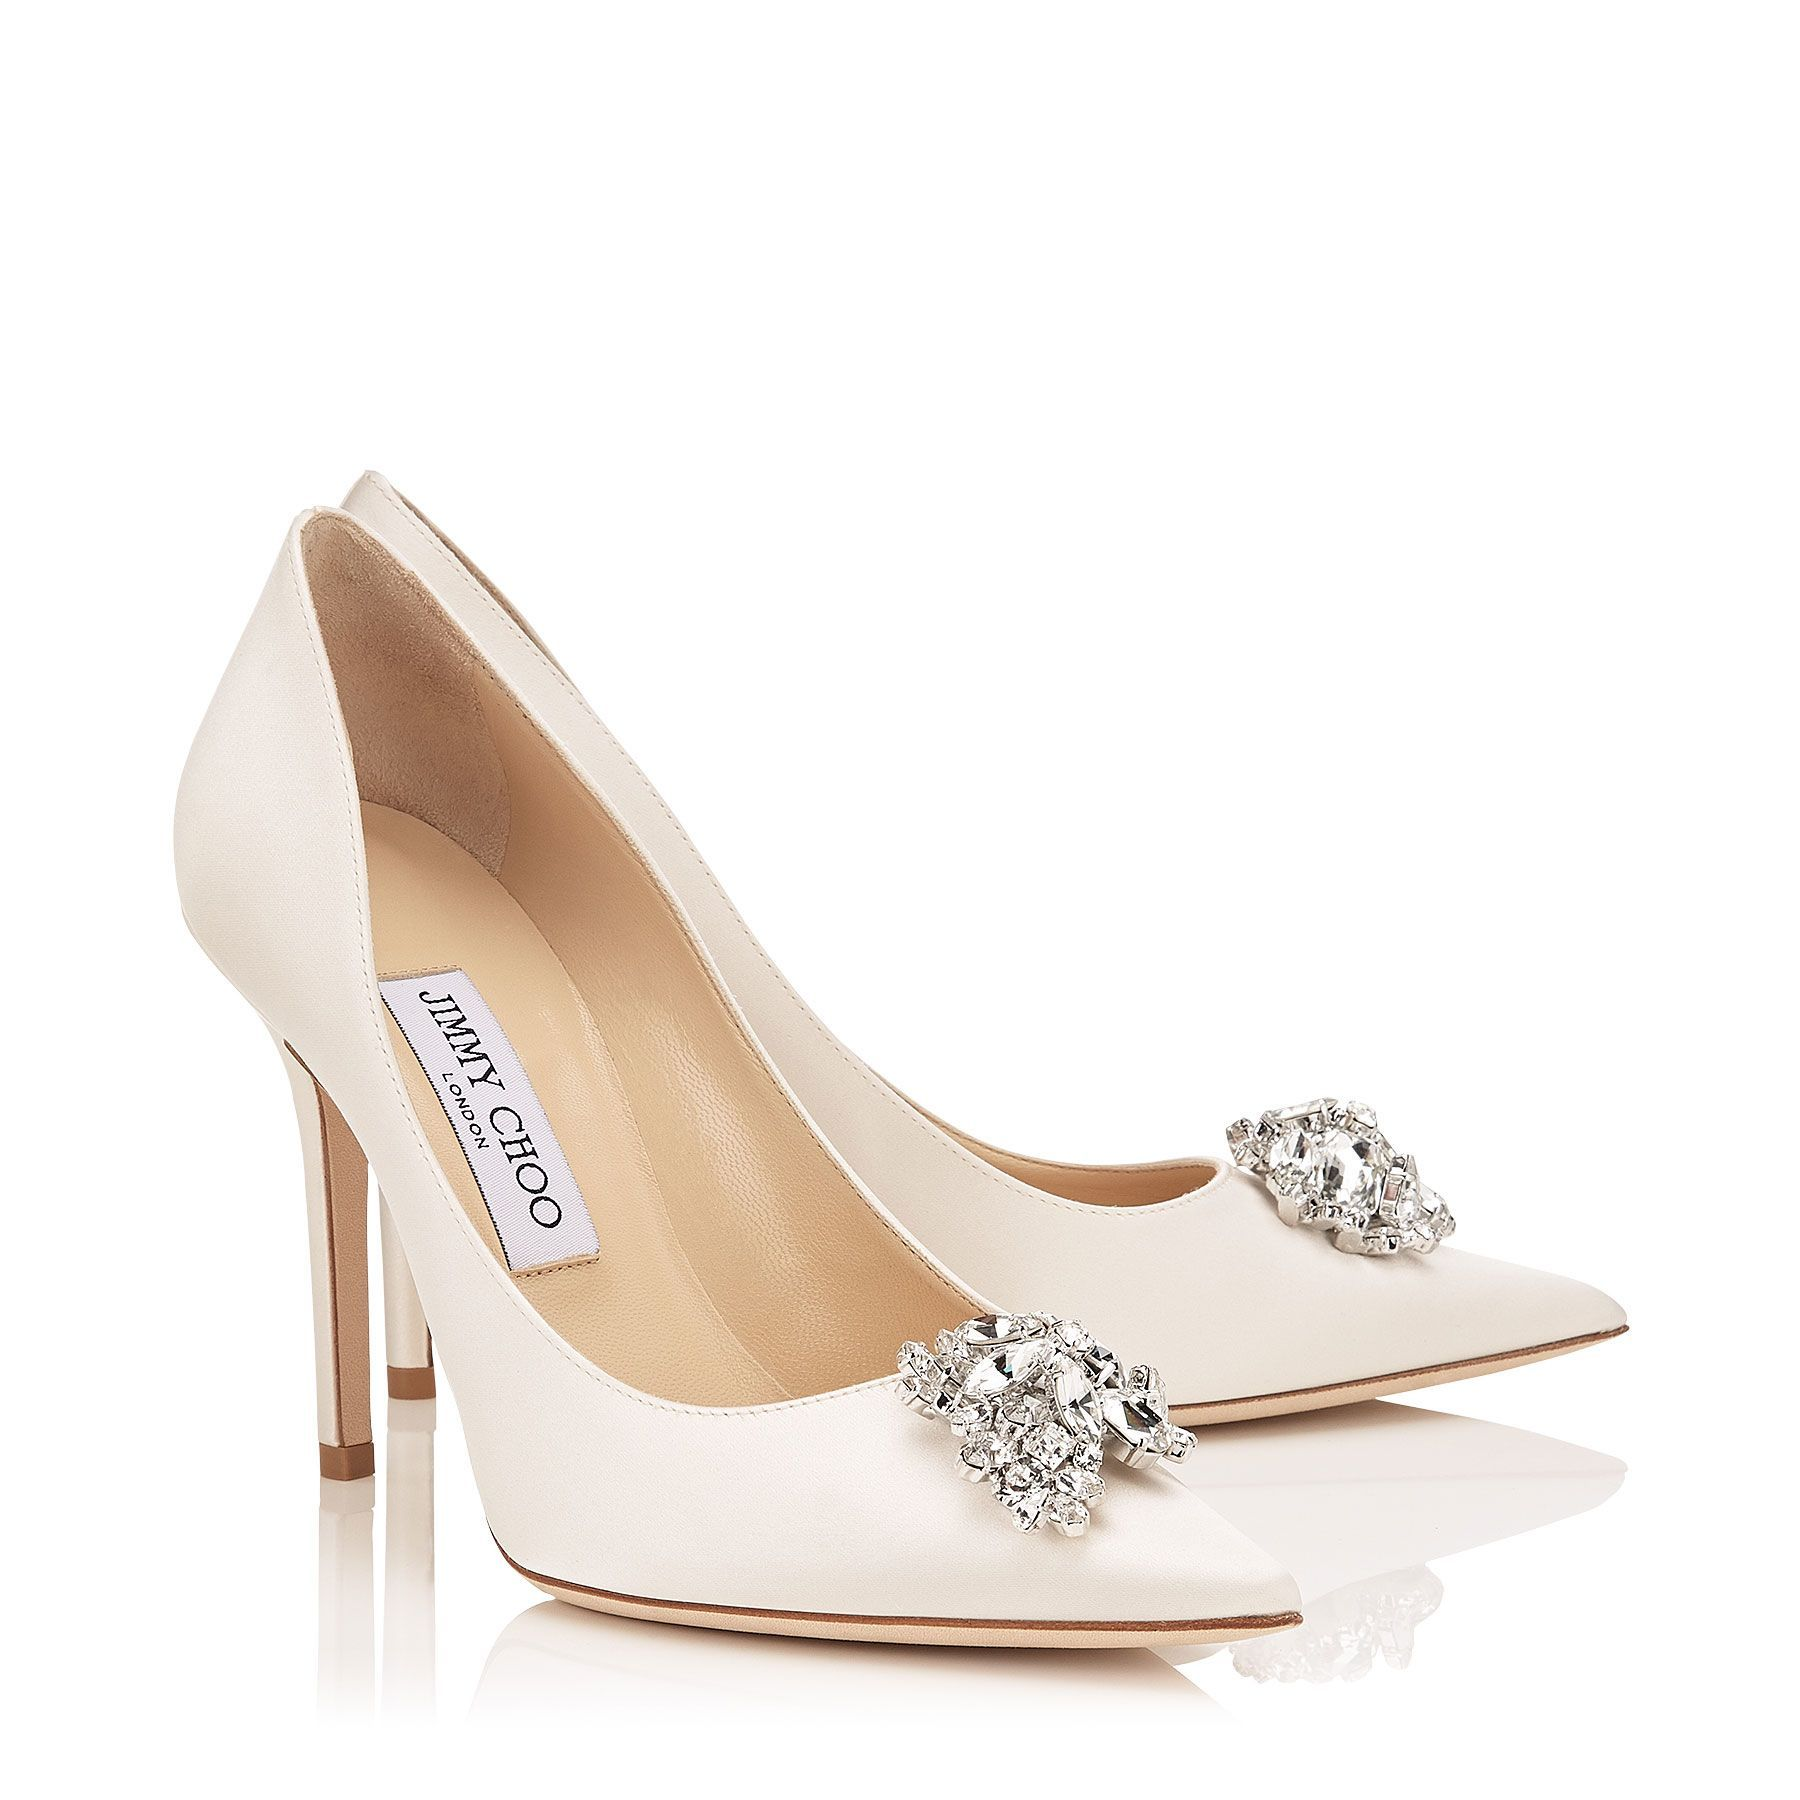 Ivory Satin Pointy Toe Pumps With Crystal Detail Abel Bridal Collection Ivory Bridal Shoes Sparkly Wedding Shoes Bride Shoes